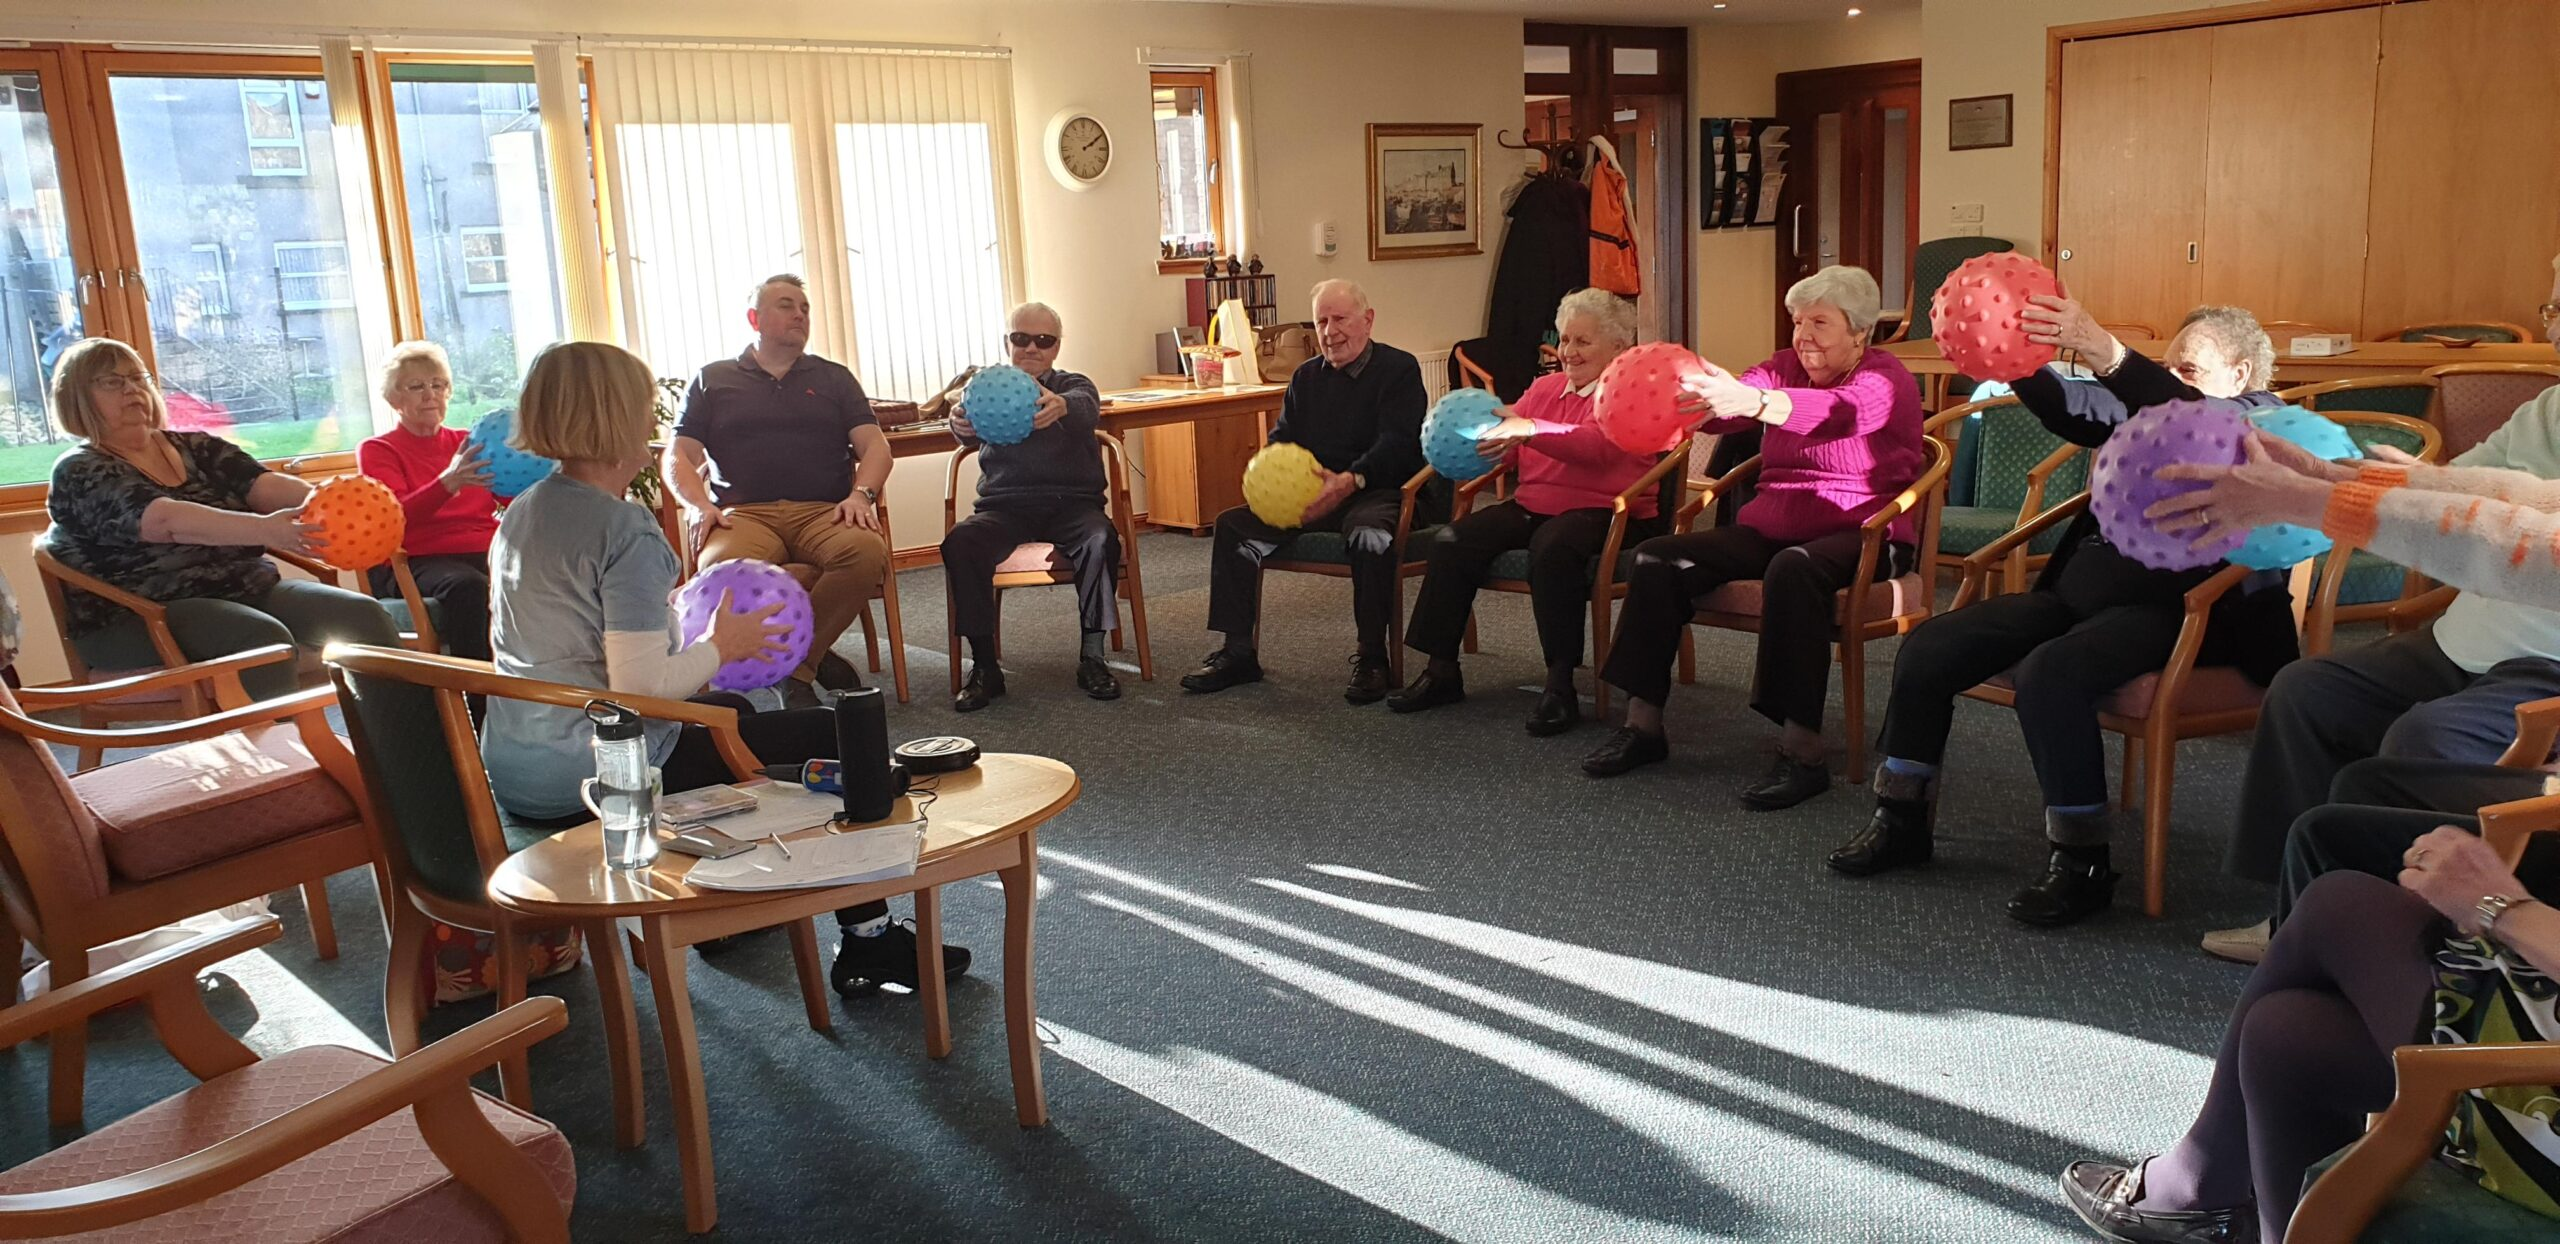 Large group of seated adults doing ball-based exercises